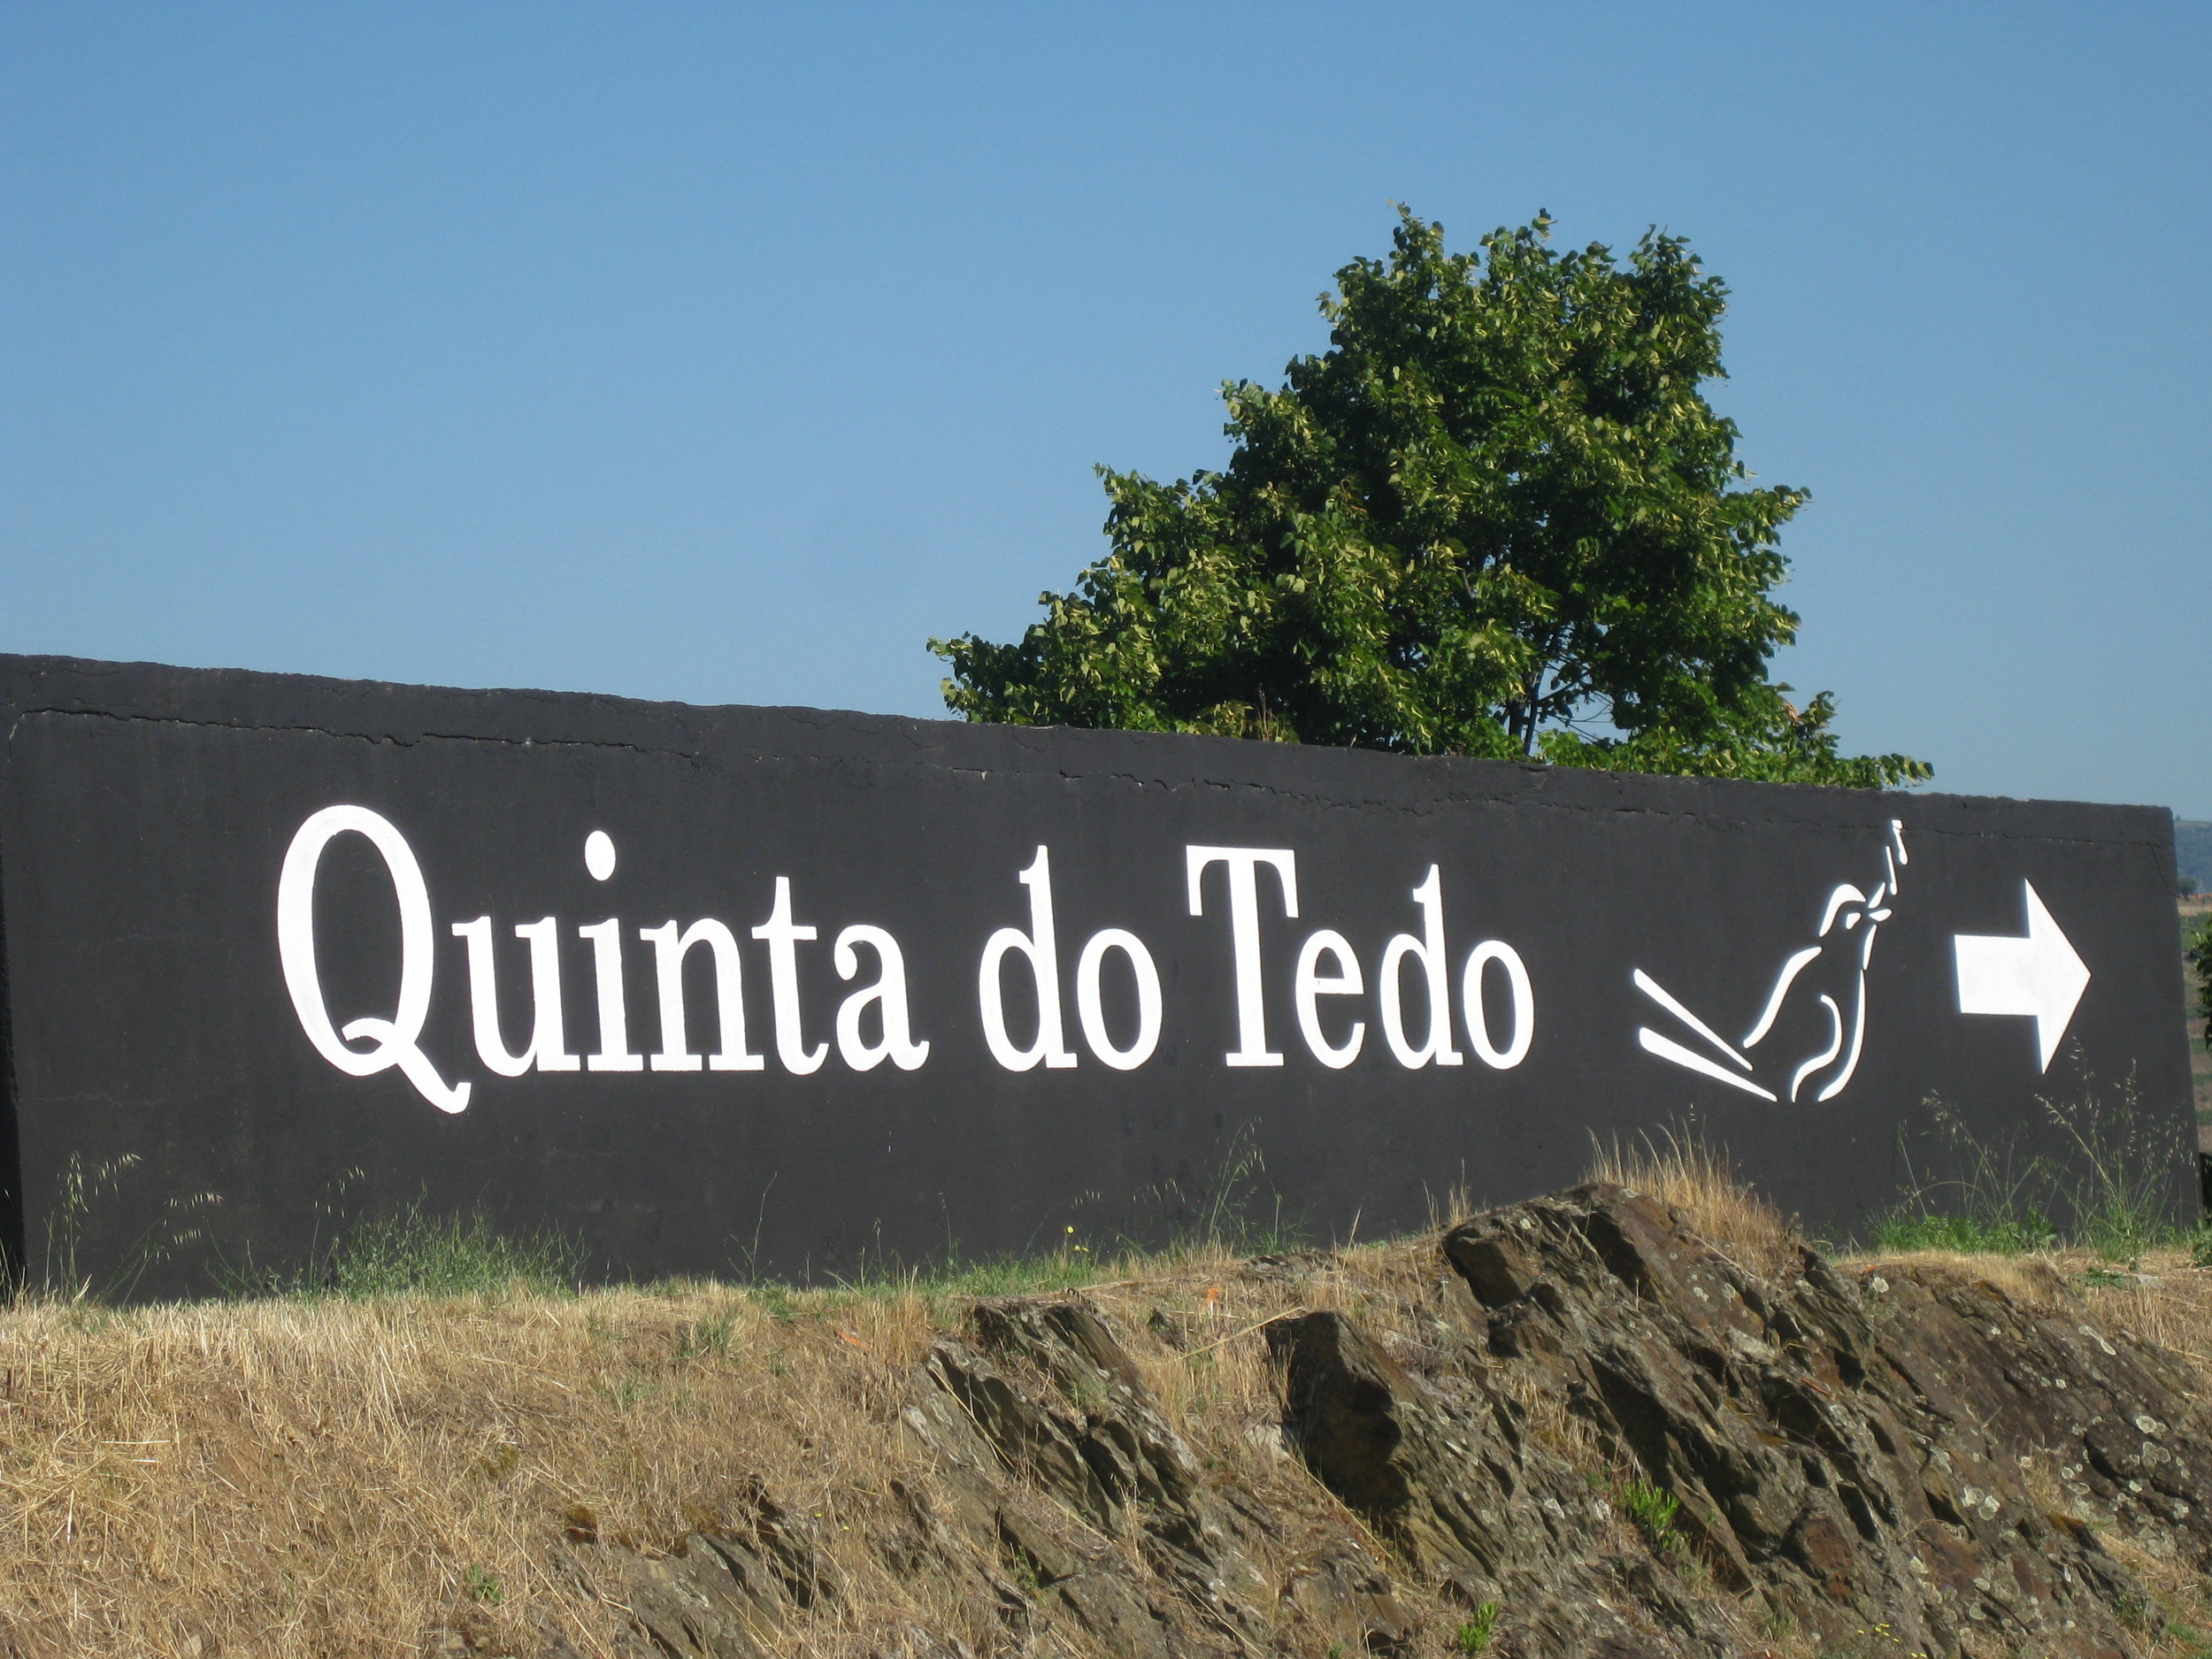 All roads lead to Quinta do Tedo!